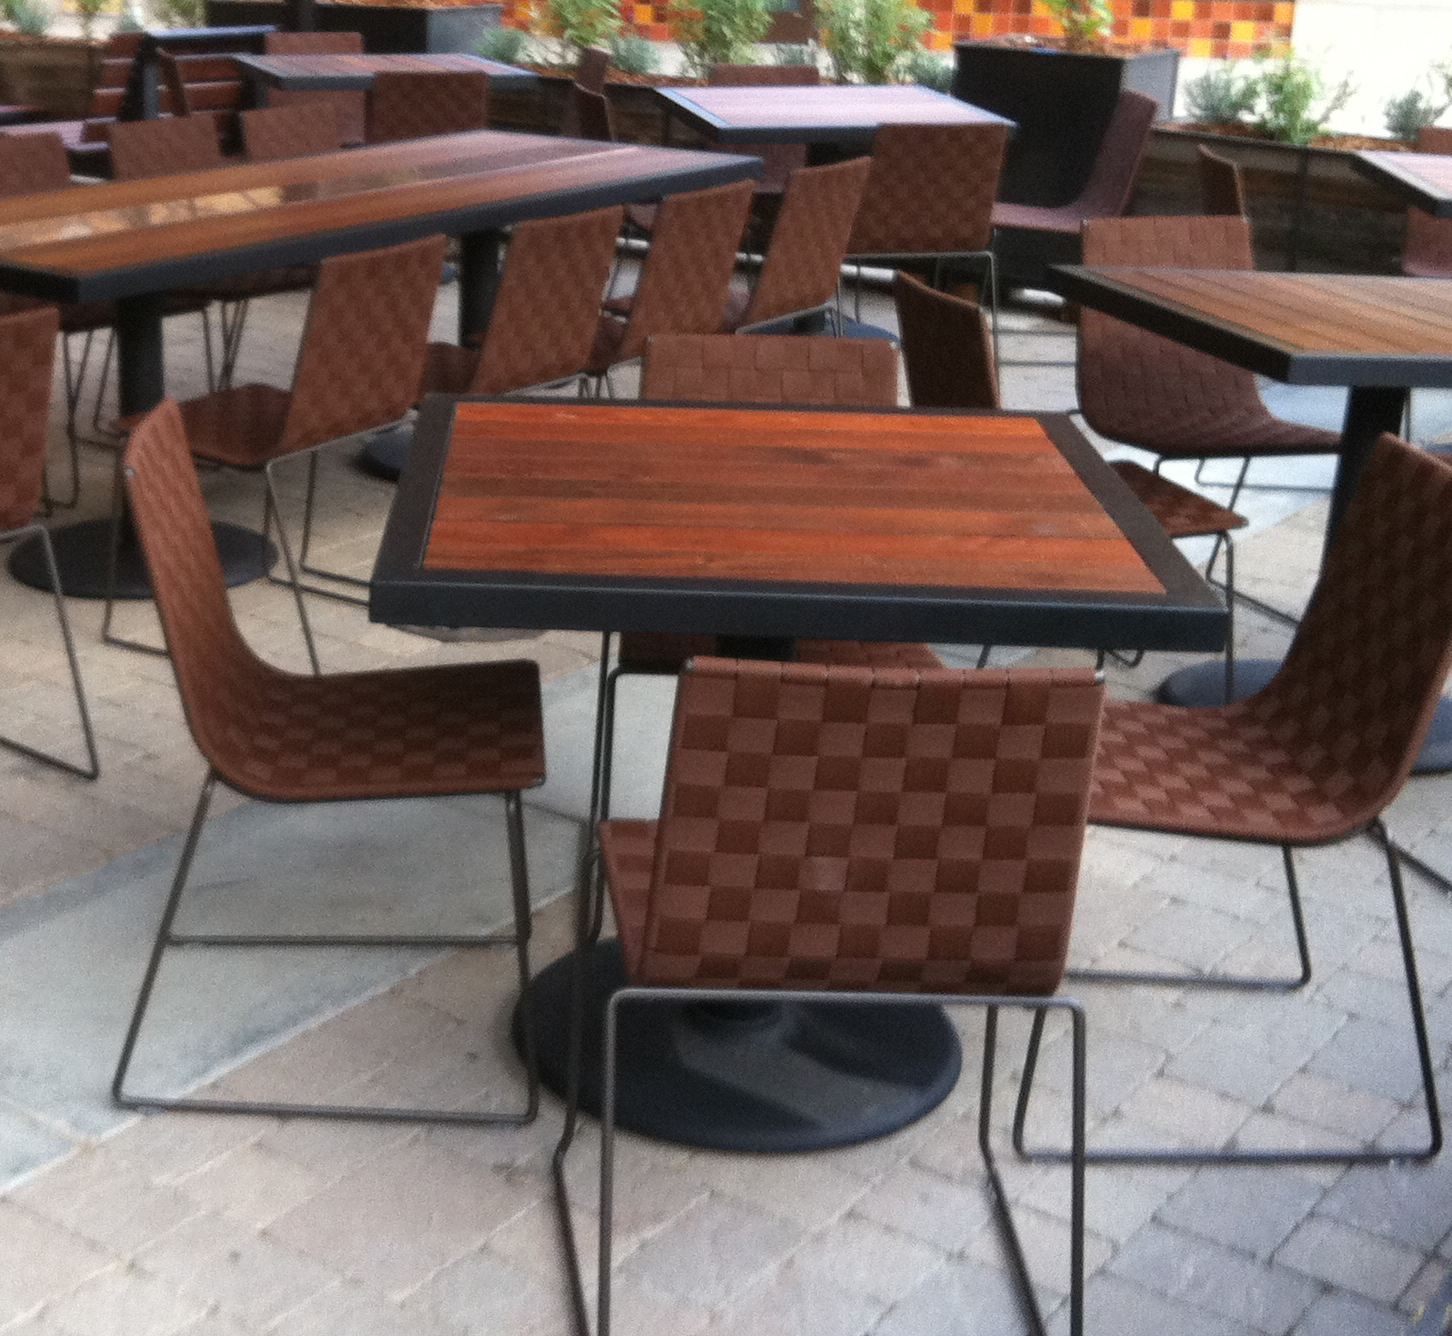 Outdoor tables 02 cropped.jpg